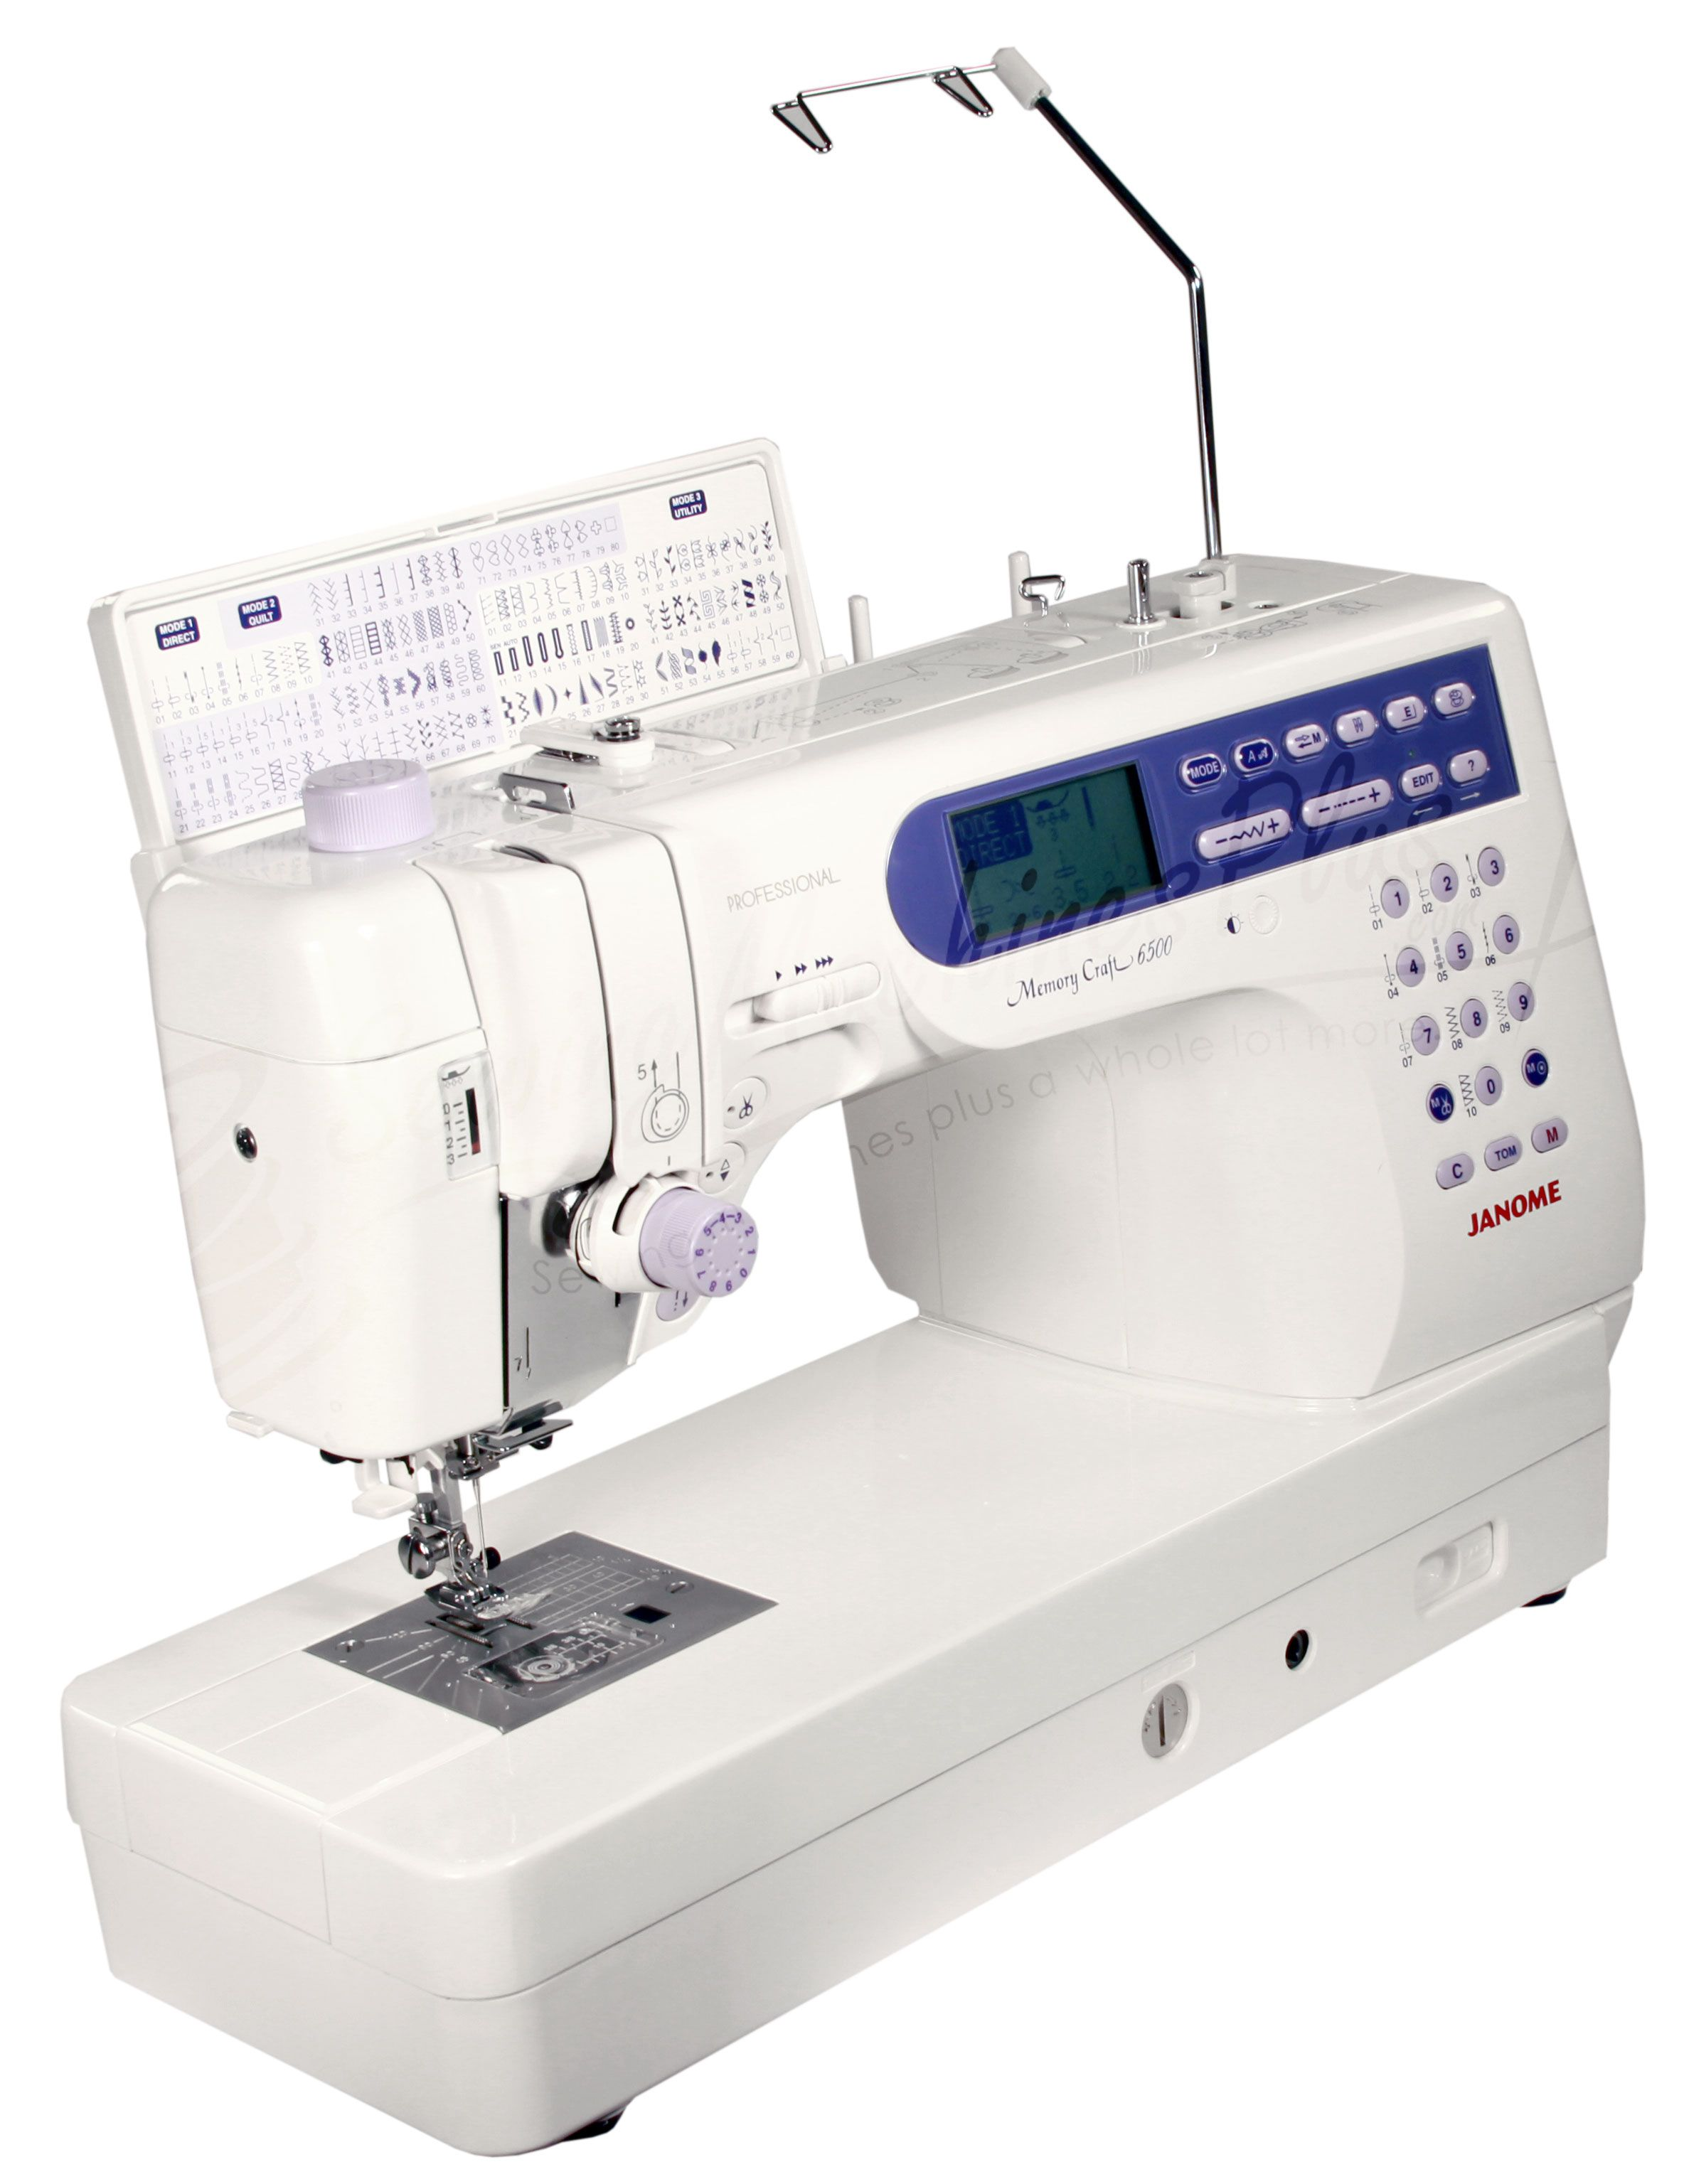 Janome memory craft 6500p - Janome Memory Craft 6500p Sewing Machine With Videos And Janome Mc6500p Manual At The Bottom Of